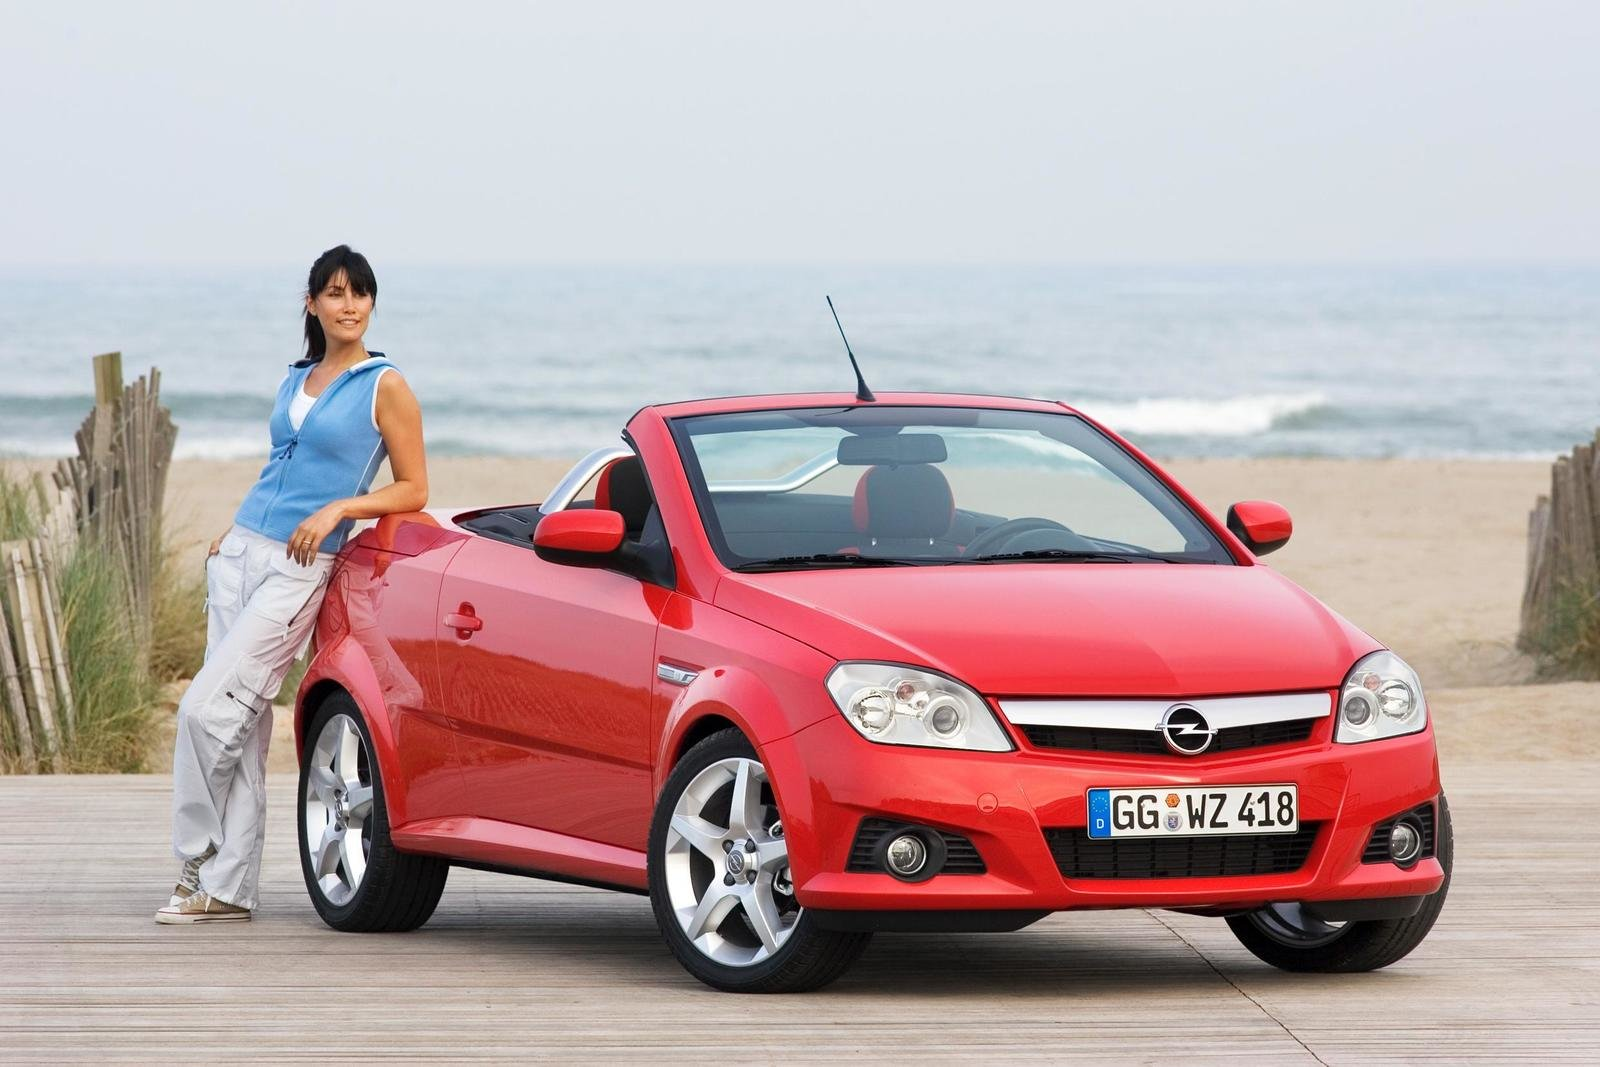 2007 opel tigra twintop picture 154996 car review top speed. Black Bedroom Furniture Sets. Home Design Ideas